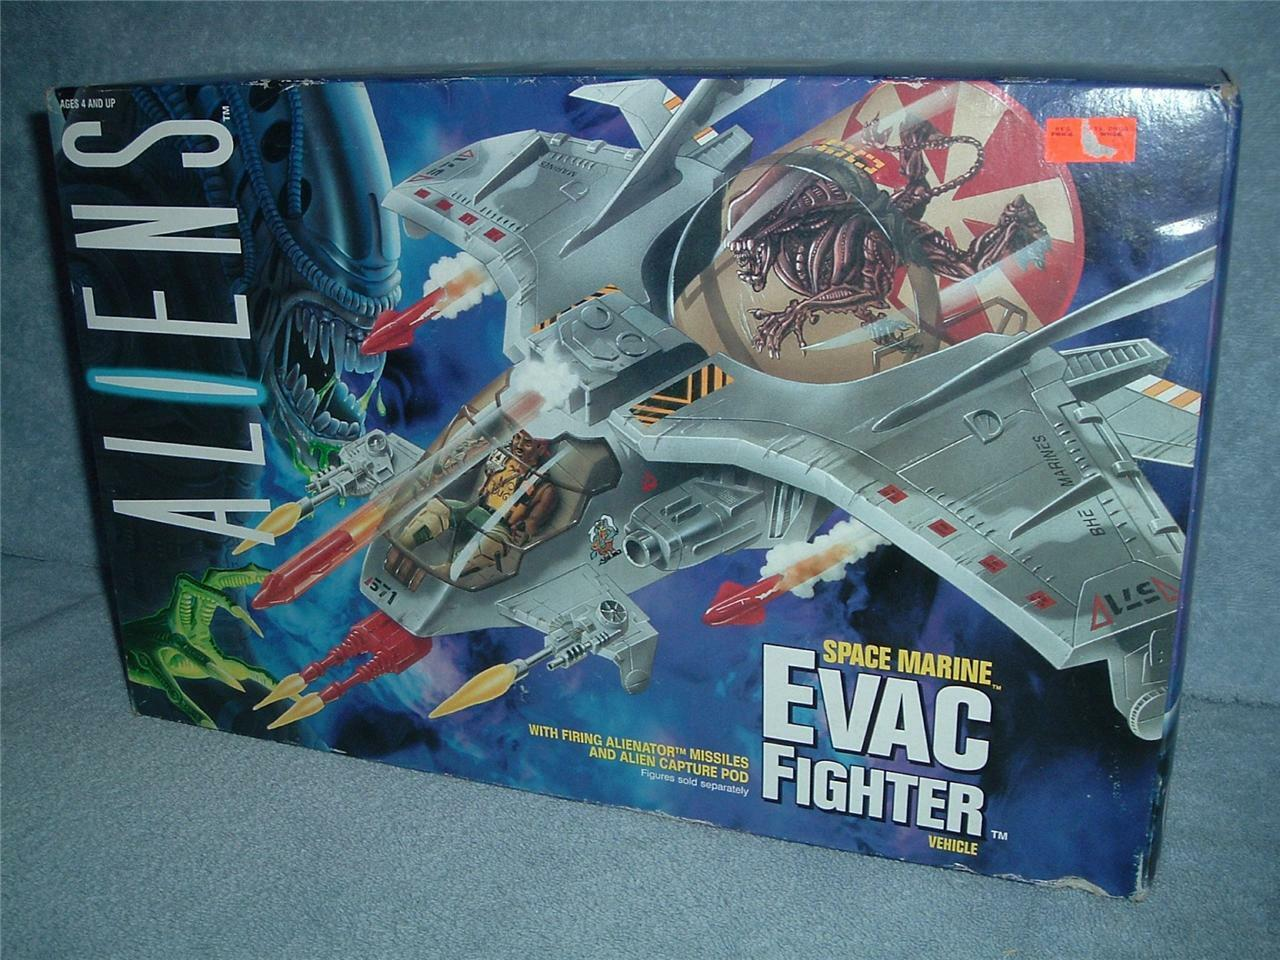 Space Marine EVAC Fighter ALIENS Vehicle Kenner 1992 Vintage Vintage Vintage New Sealed Box MISB ce6e44